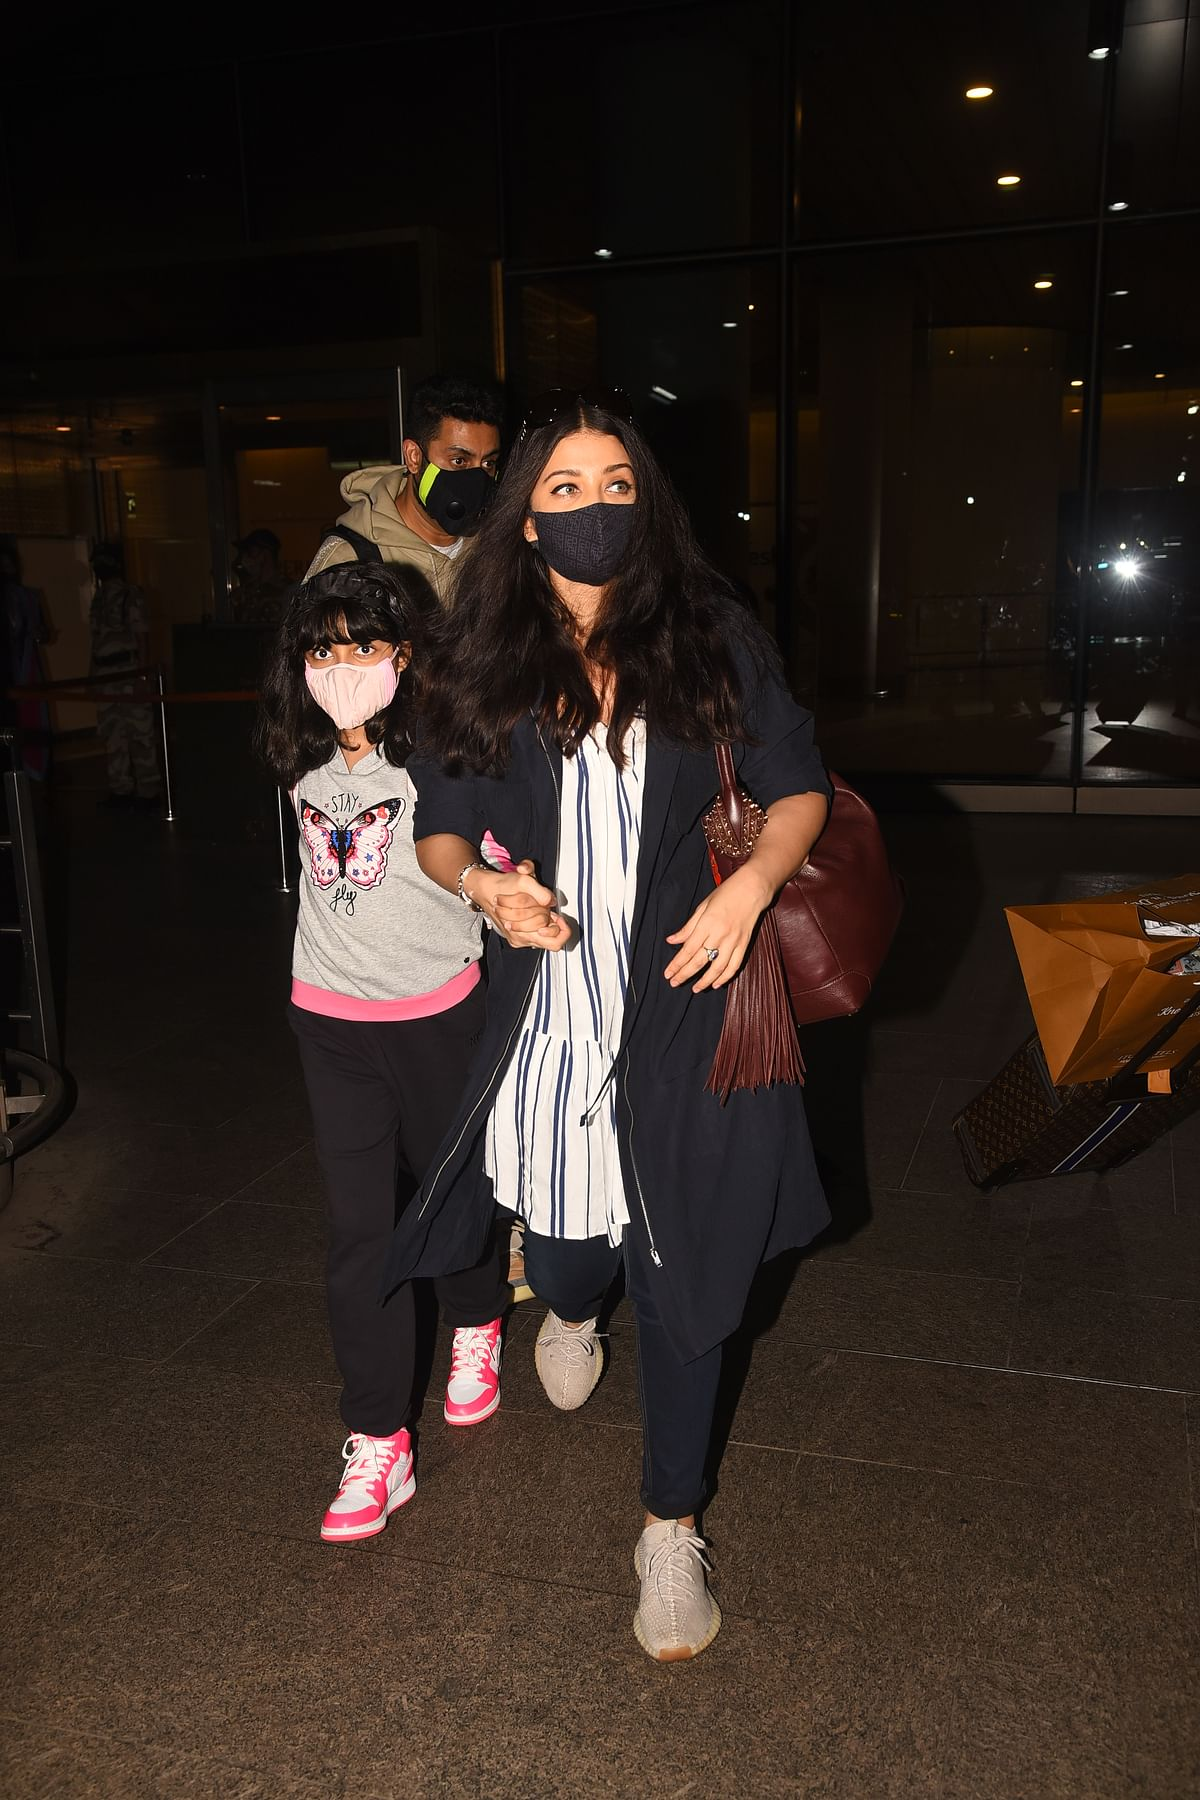 Trolls label Aishwarya Rai Bachchan an 'overprotective mom' after she refuses to let go of daughter Aaradhya's hand